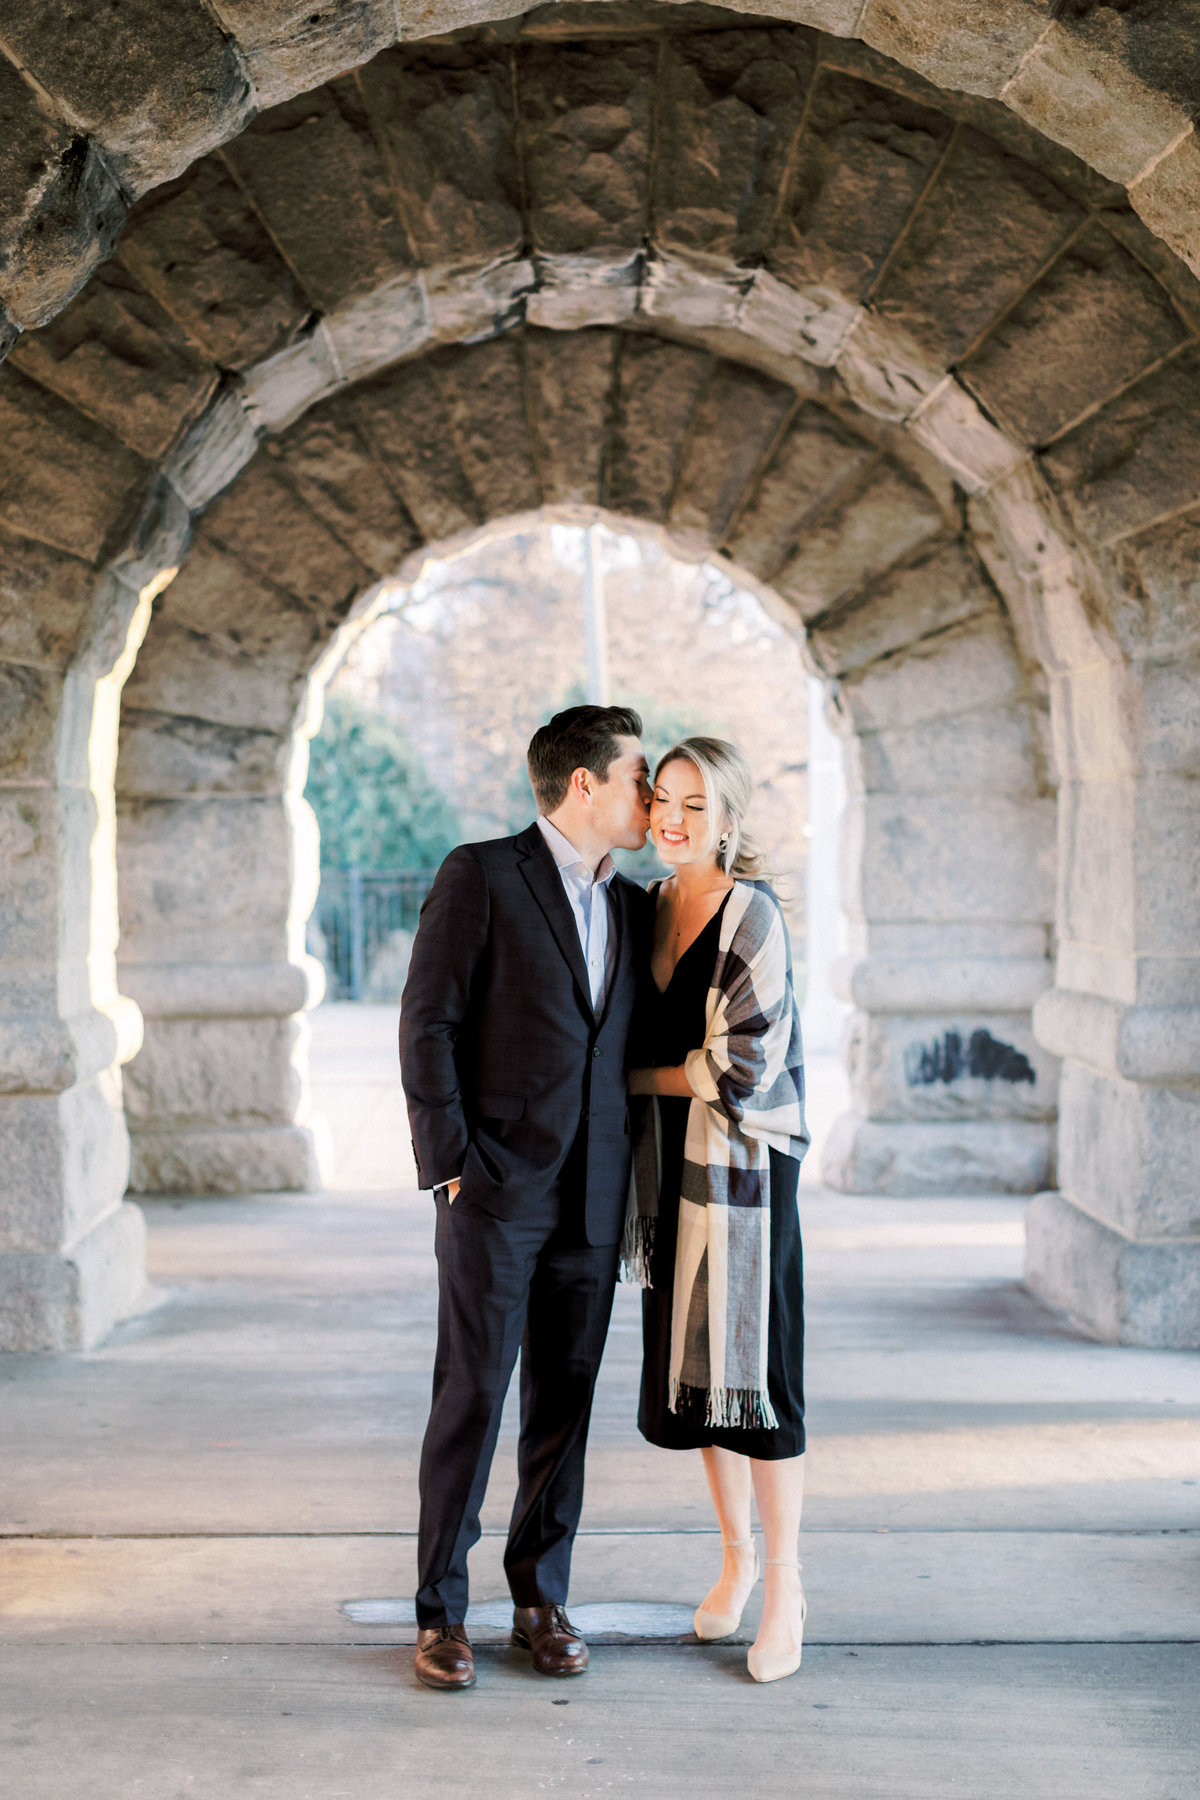 TiffaneyChildsPhotography-ChicagoWeddingPhotographer-AnneMarie+Connor-LincolnParkNatureBoardwalkEngagementSession-73